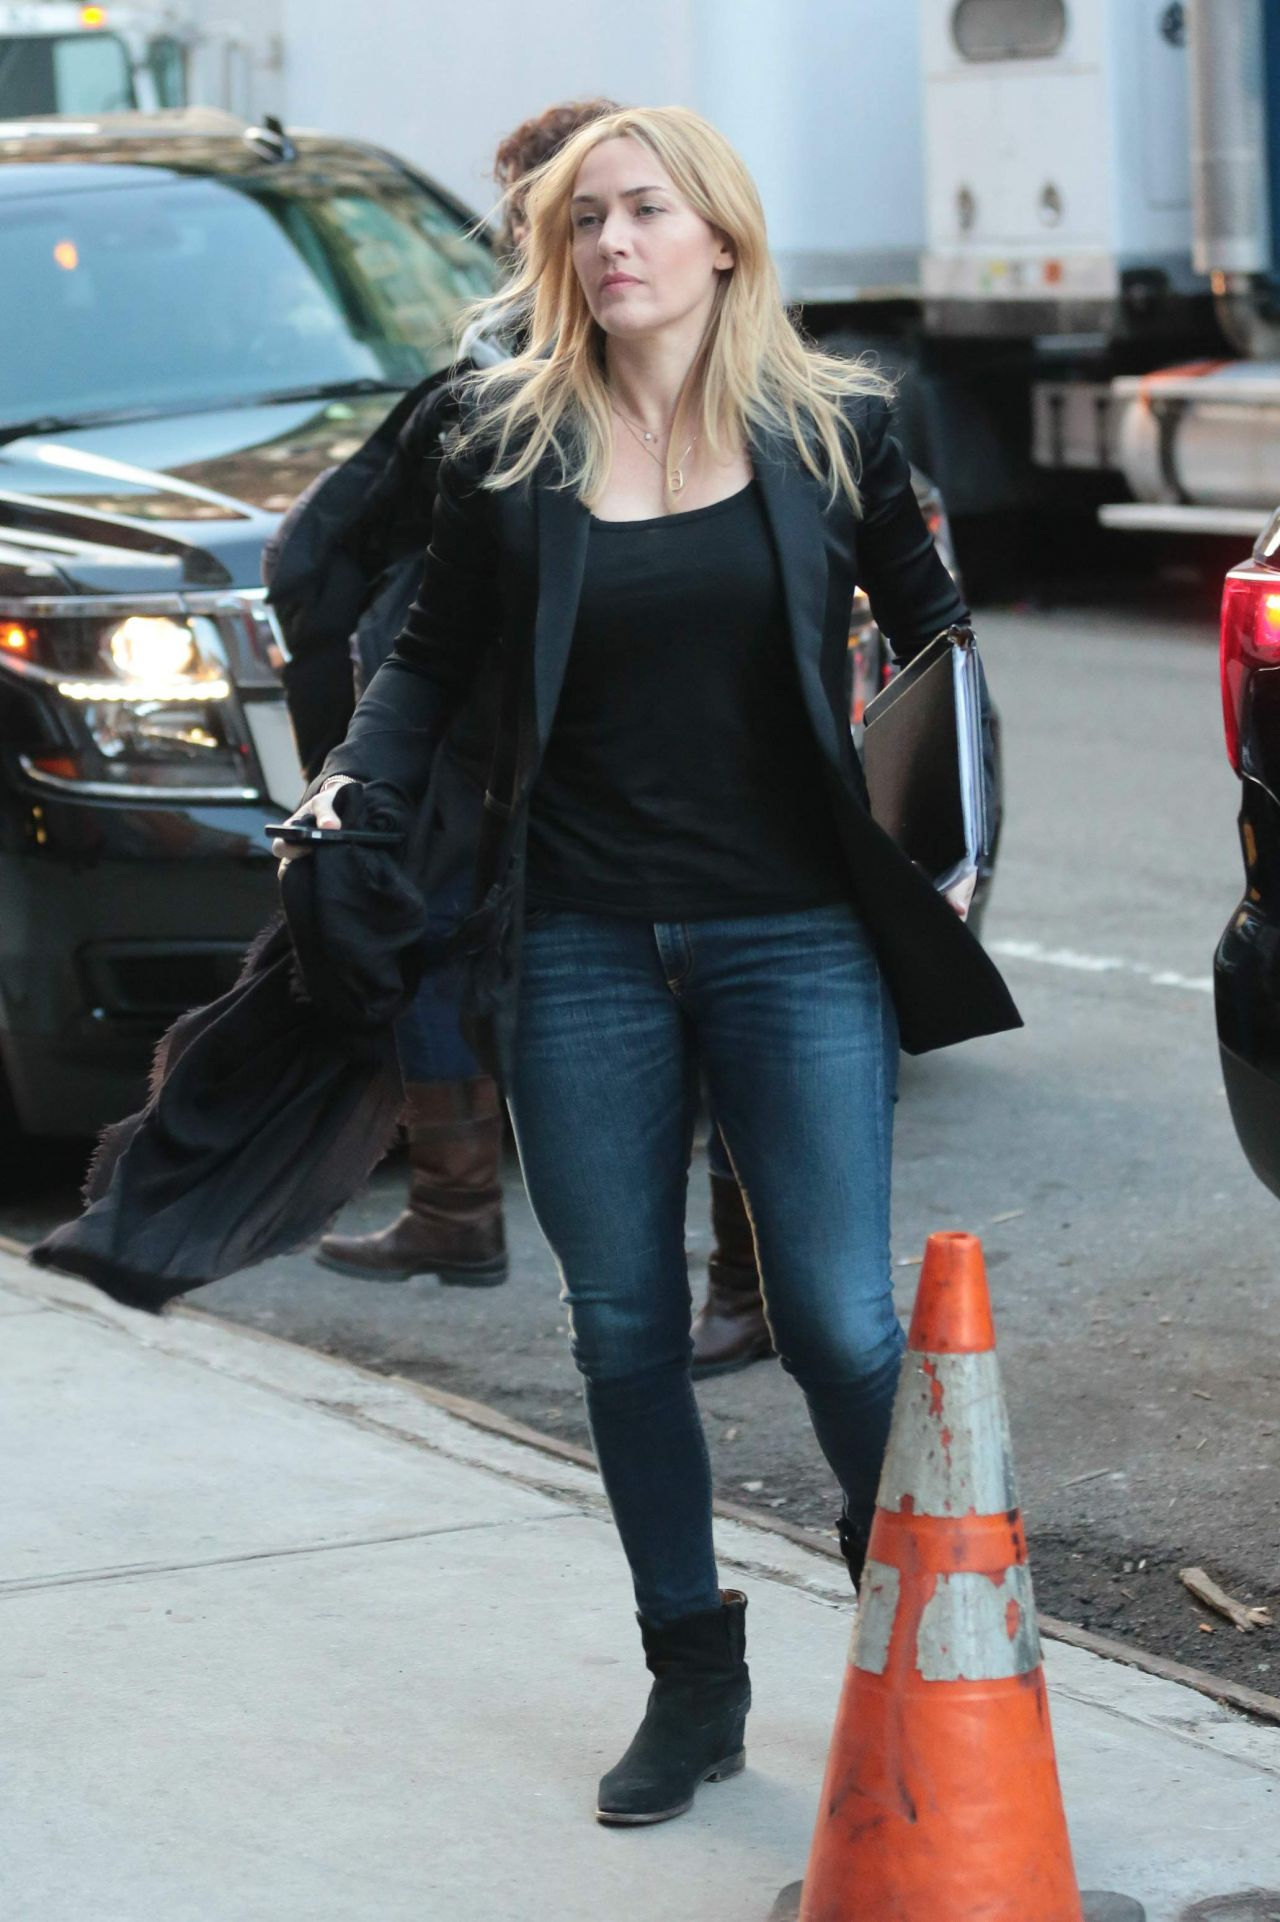 Kate Winslet Out In Nyc 3 1 2016